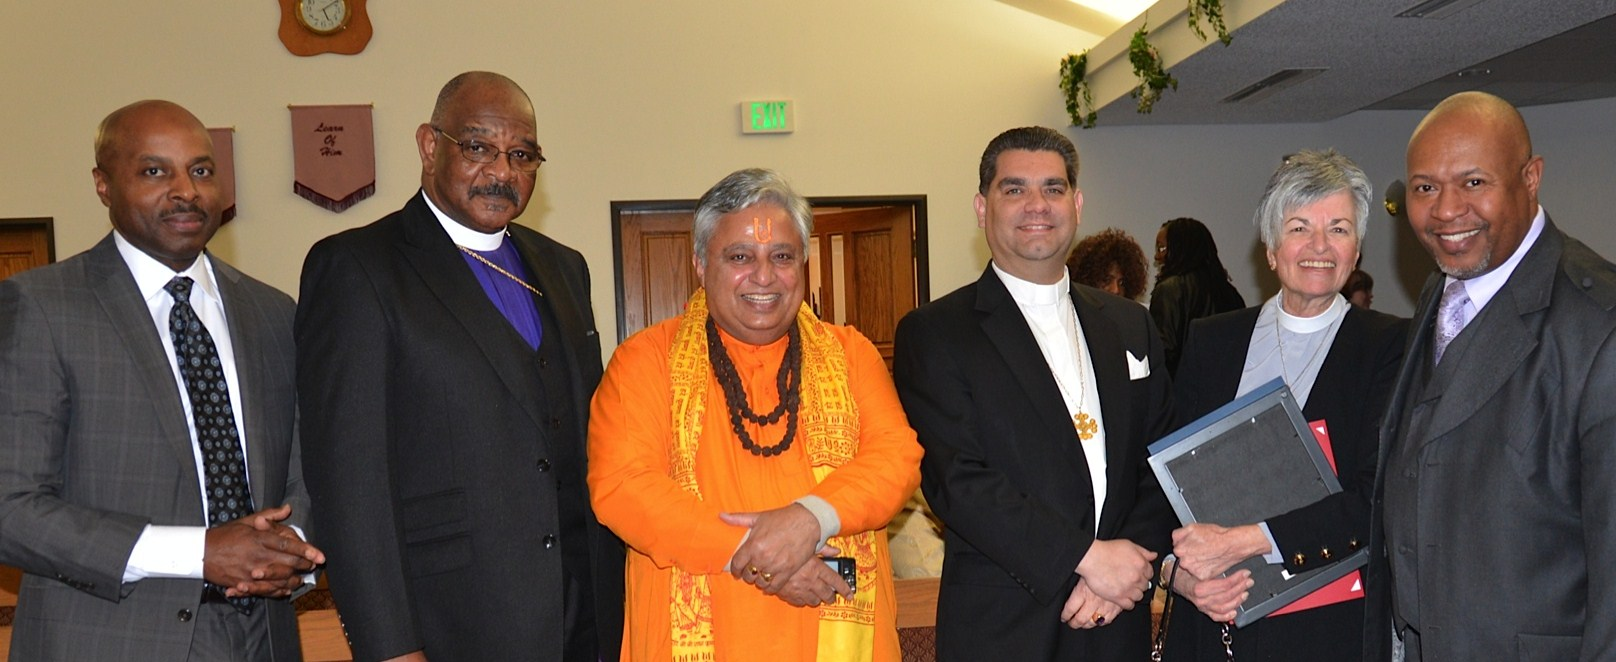 Martin Luther King  Interfaith Service 2014